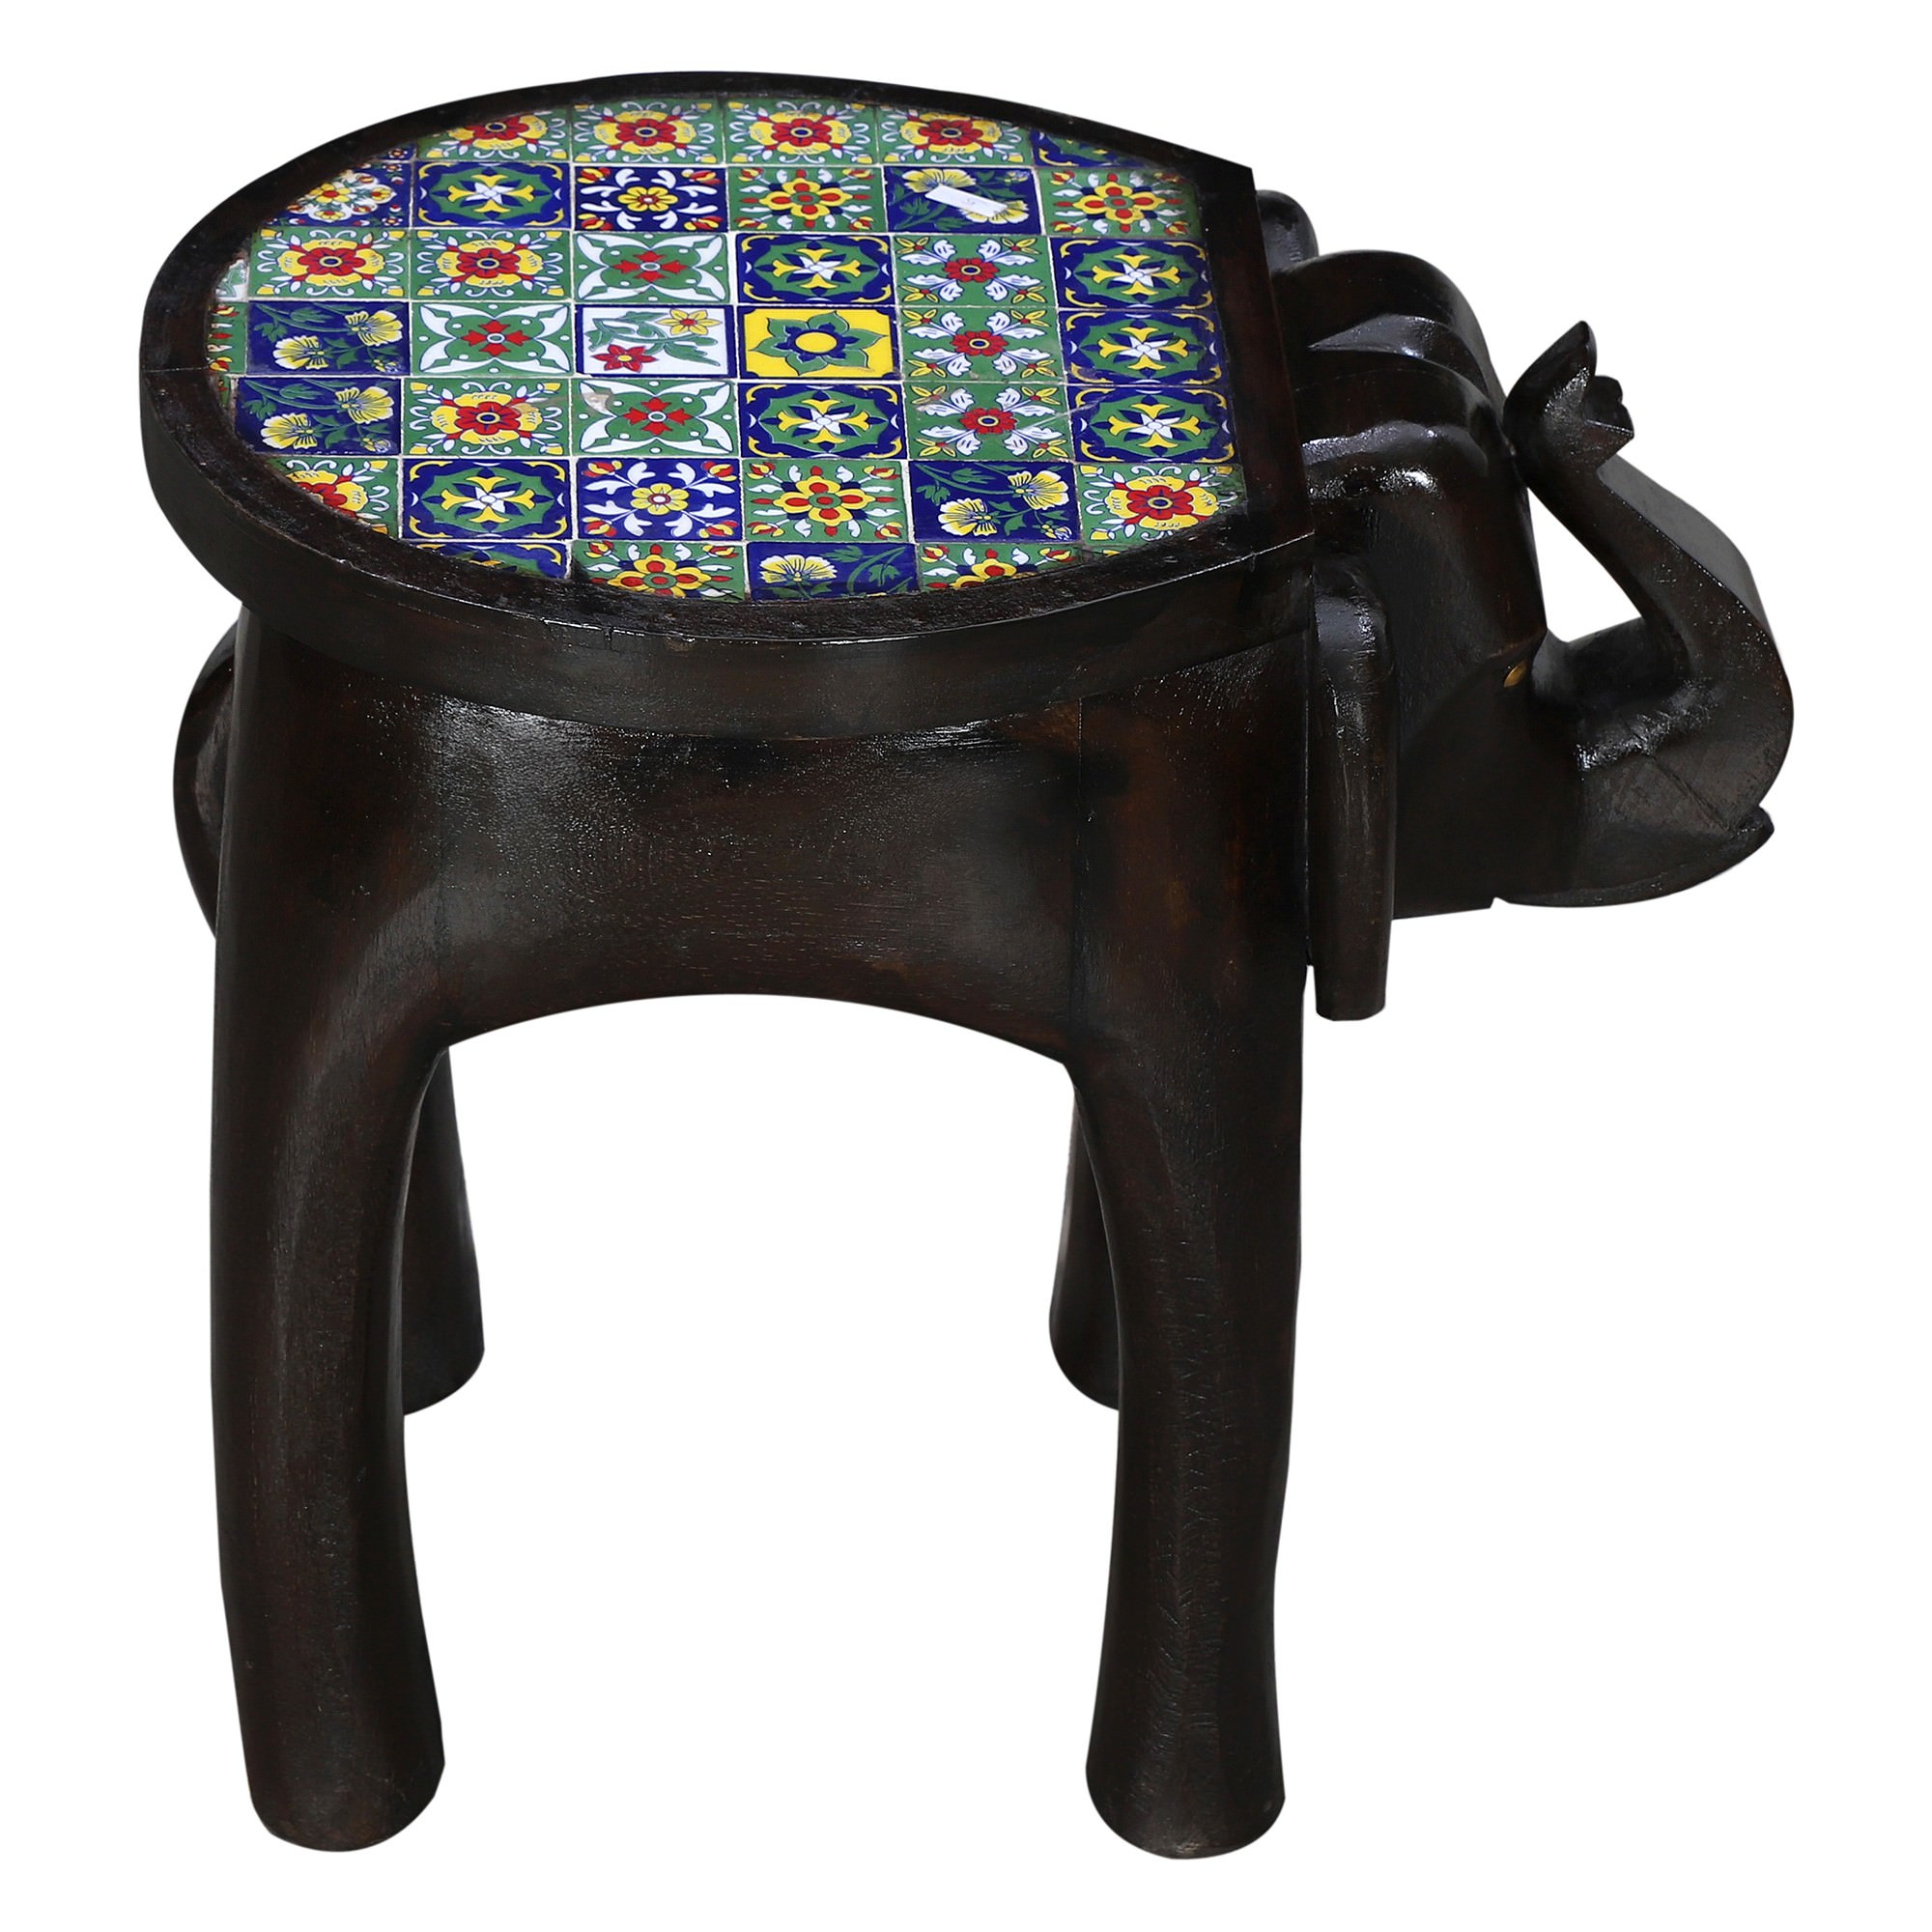 Venturo Moroccan Tile Inlay Timber Elepant Accent Stool / Side Table